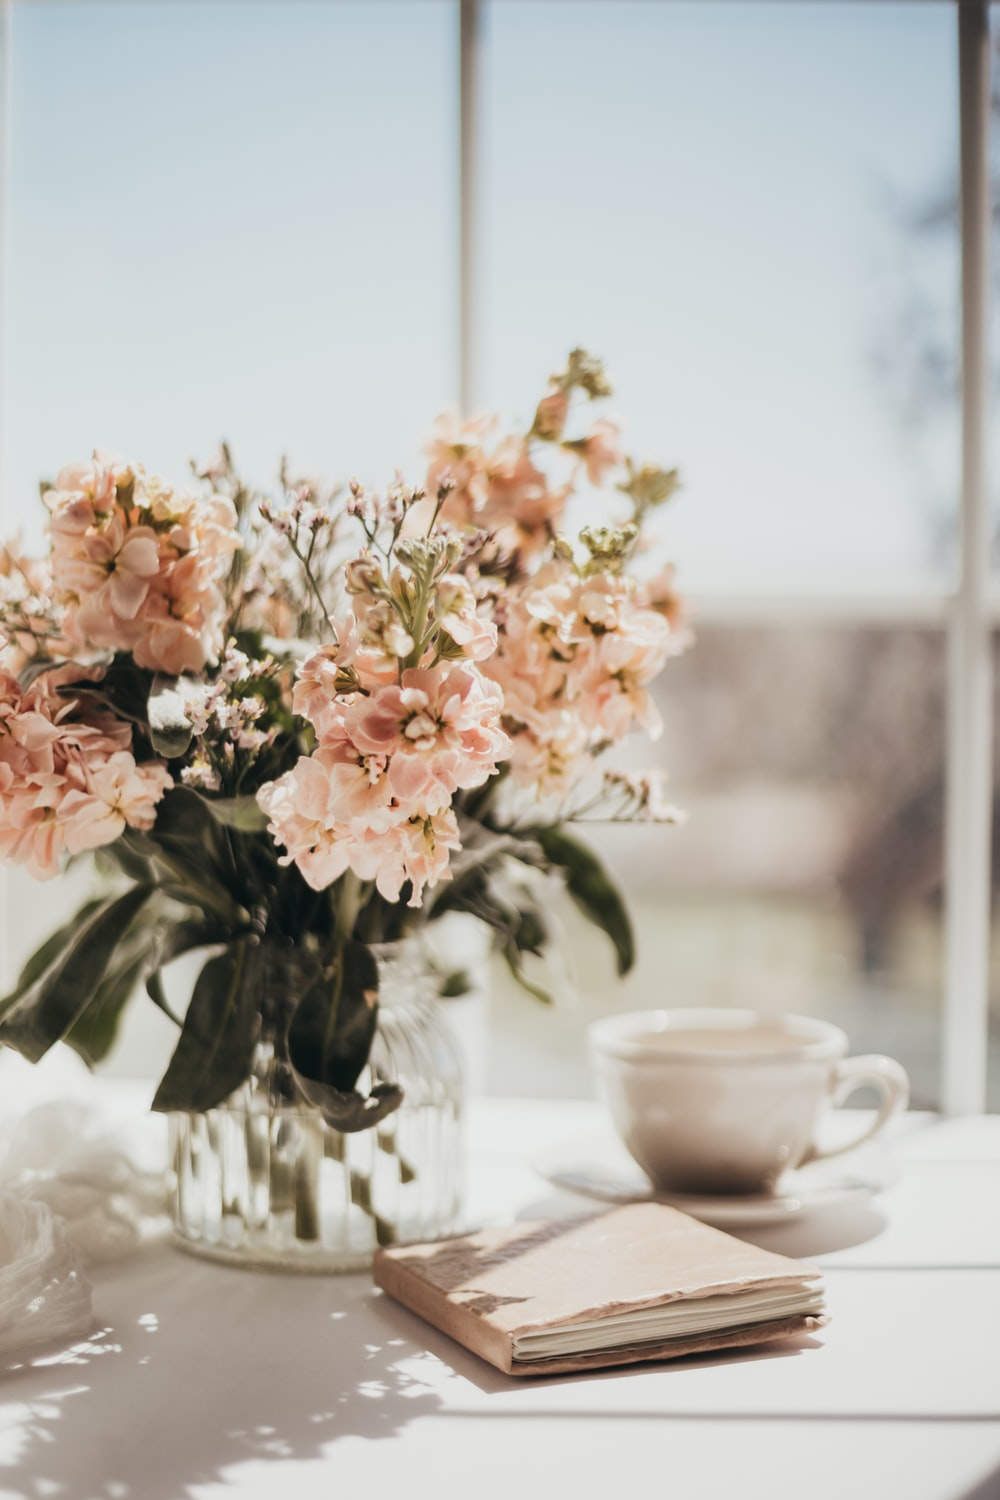 white and pink flowers on white ceramic teacup on white table